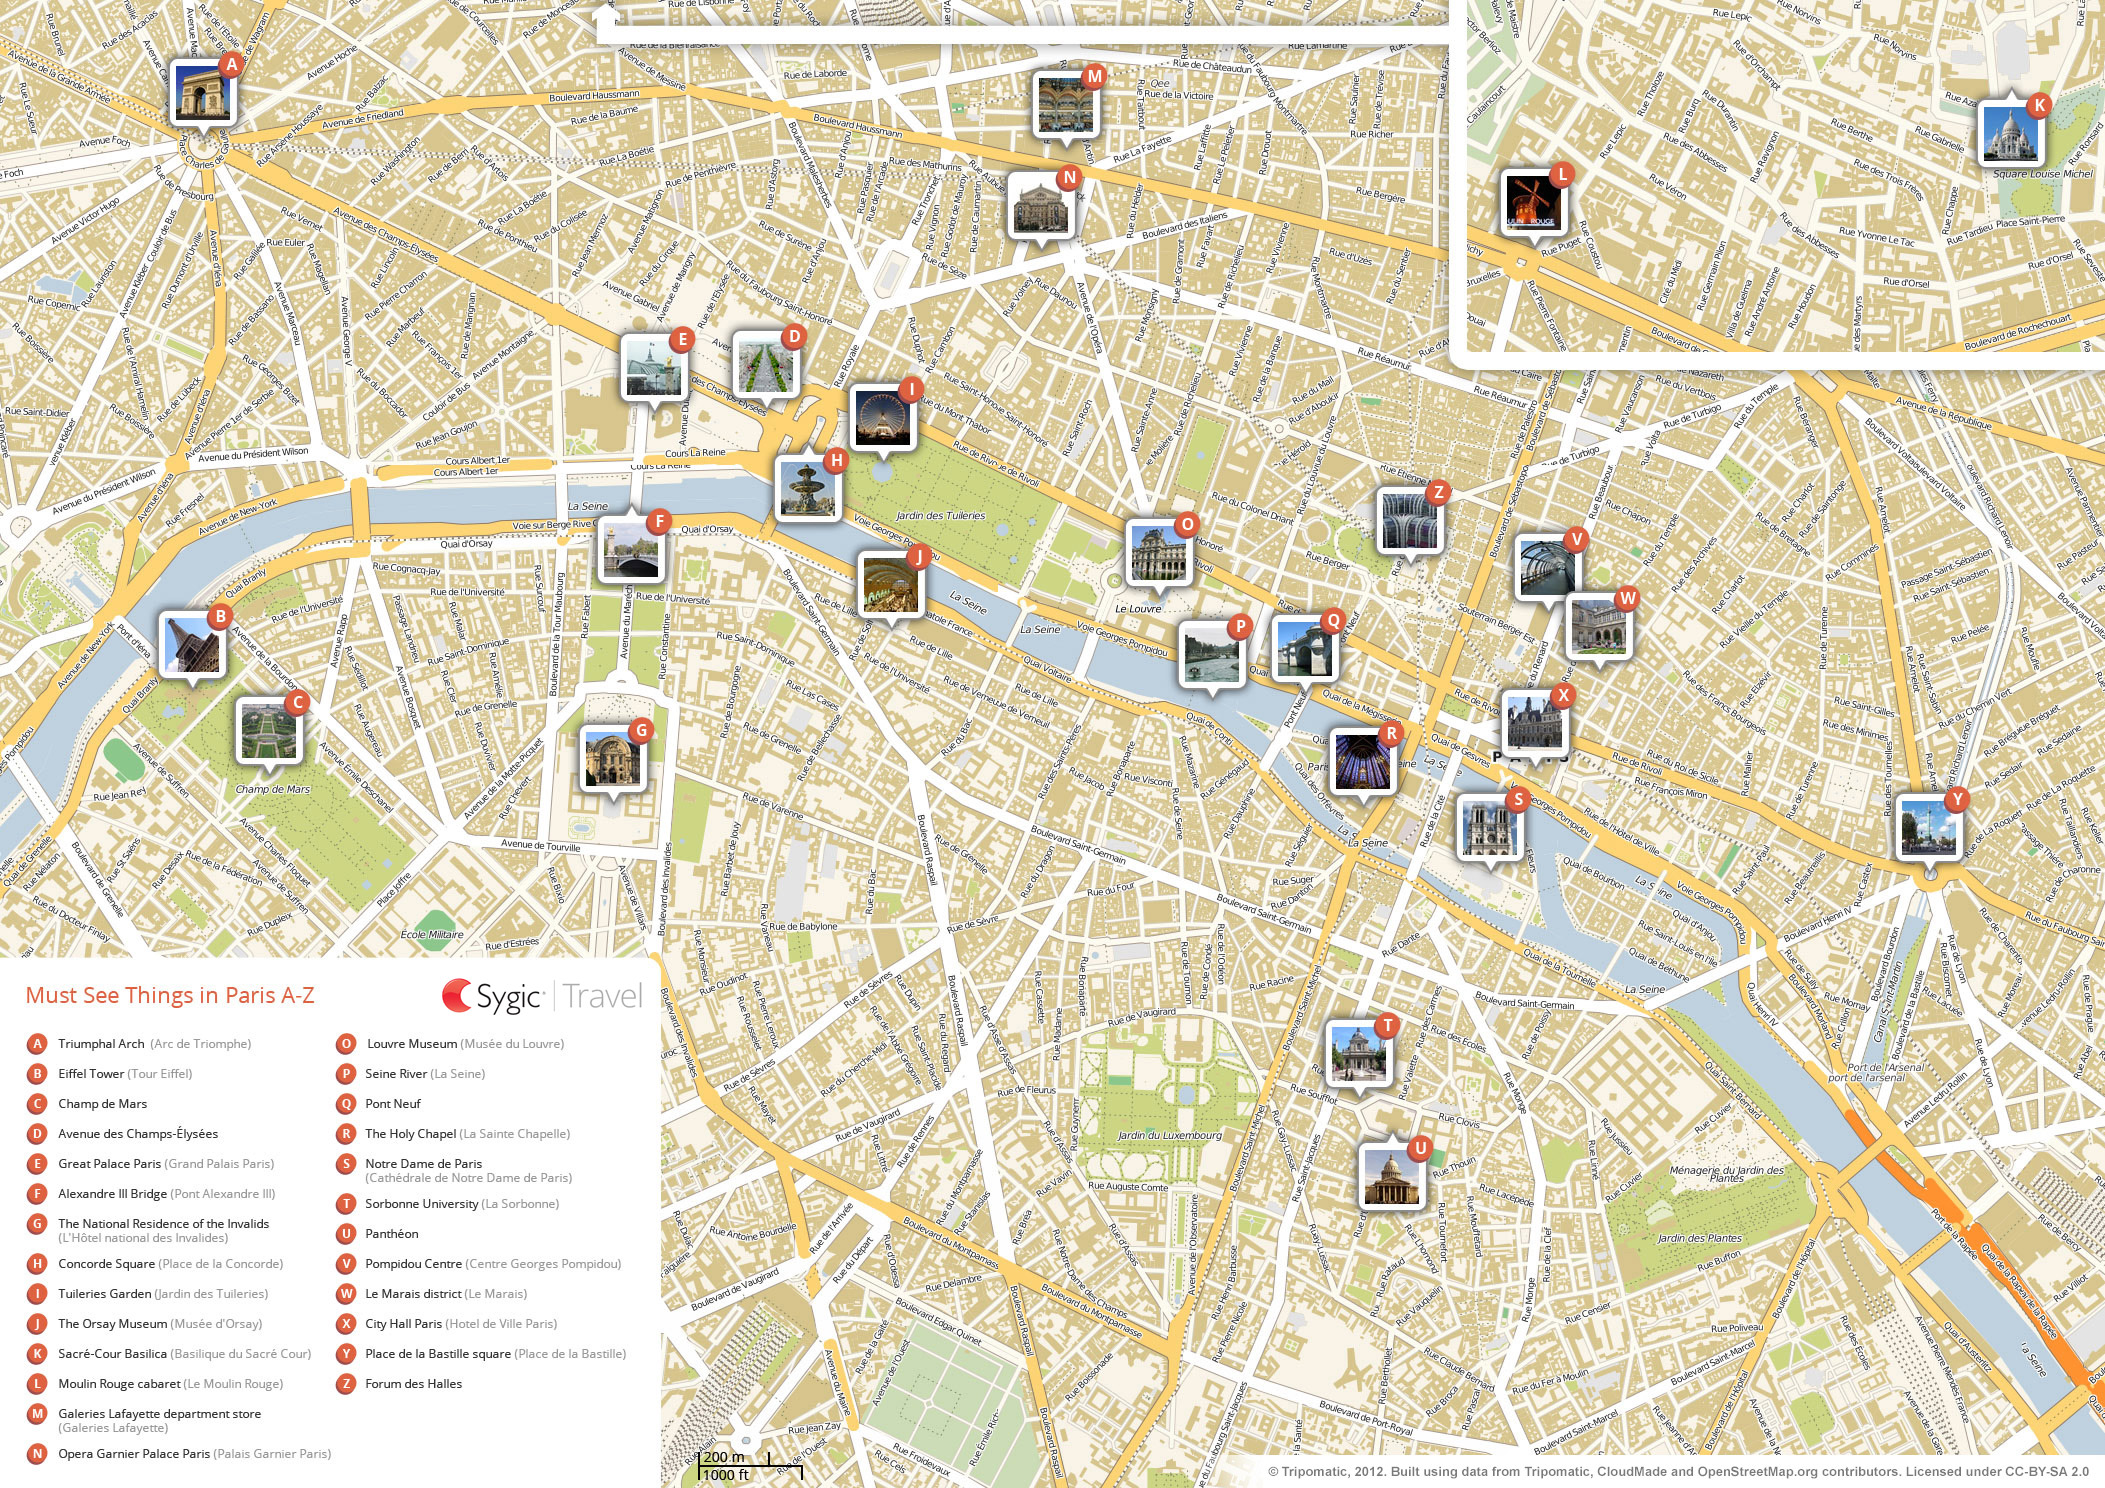 Paris Printable Tourist Map – Map Of Rome Showing Tourist Attractions